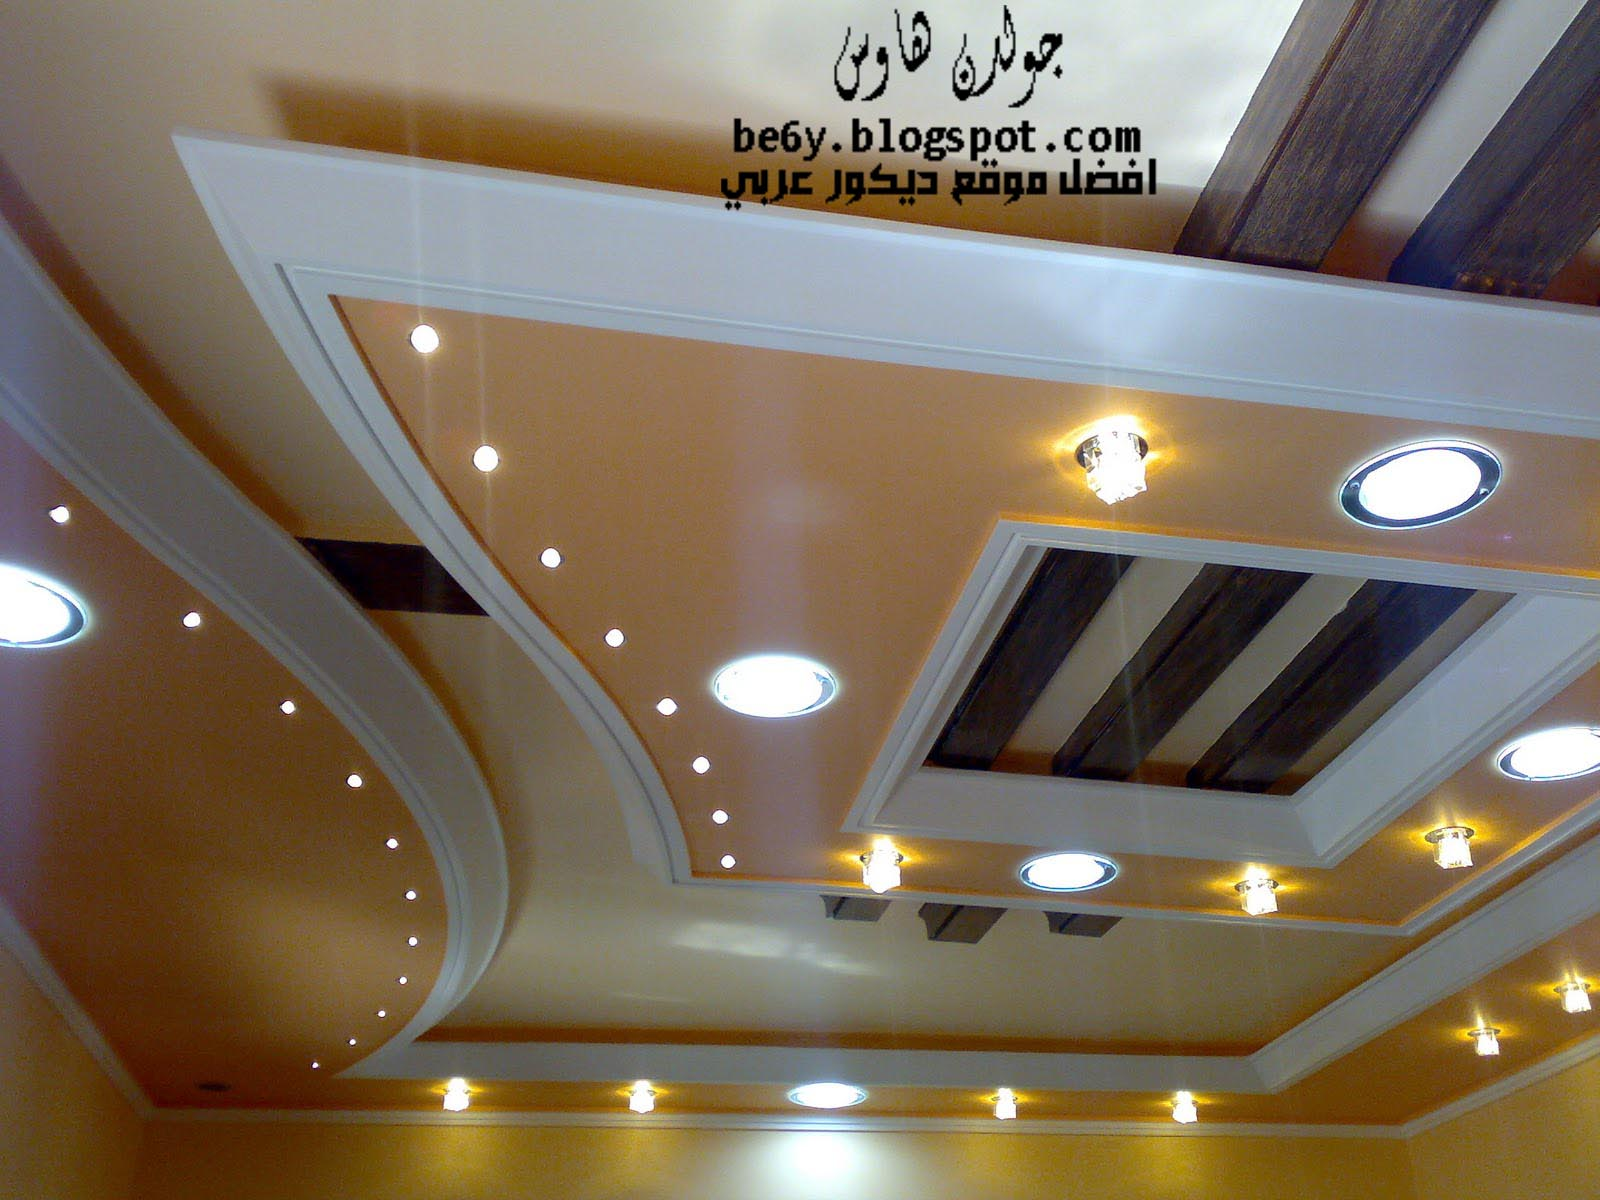 صور جبس معلق http://be6y.blogspot.com/2013/01/modern-gypsum-ceilings-suspended-ceilings.html